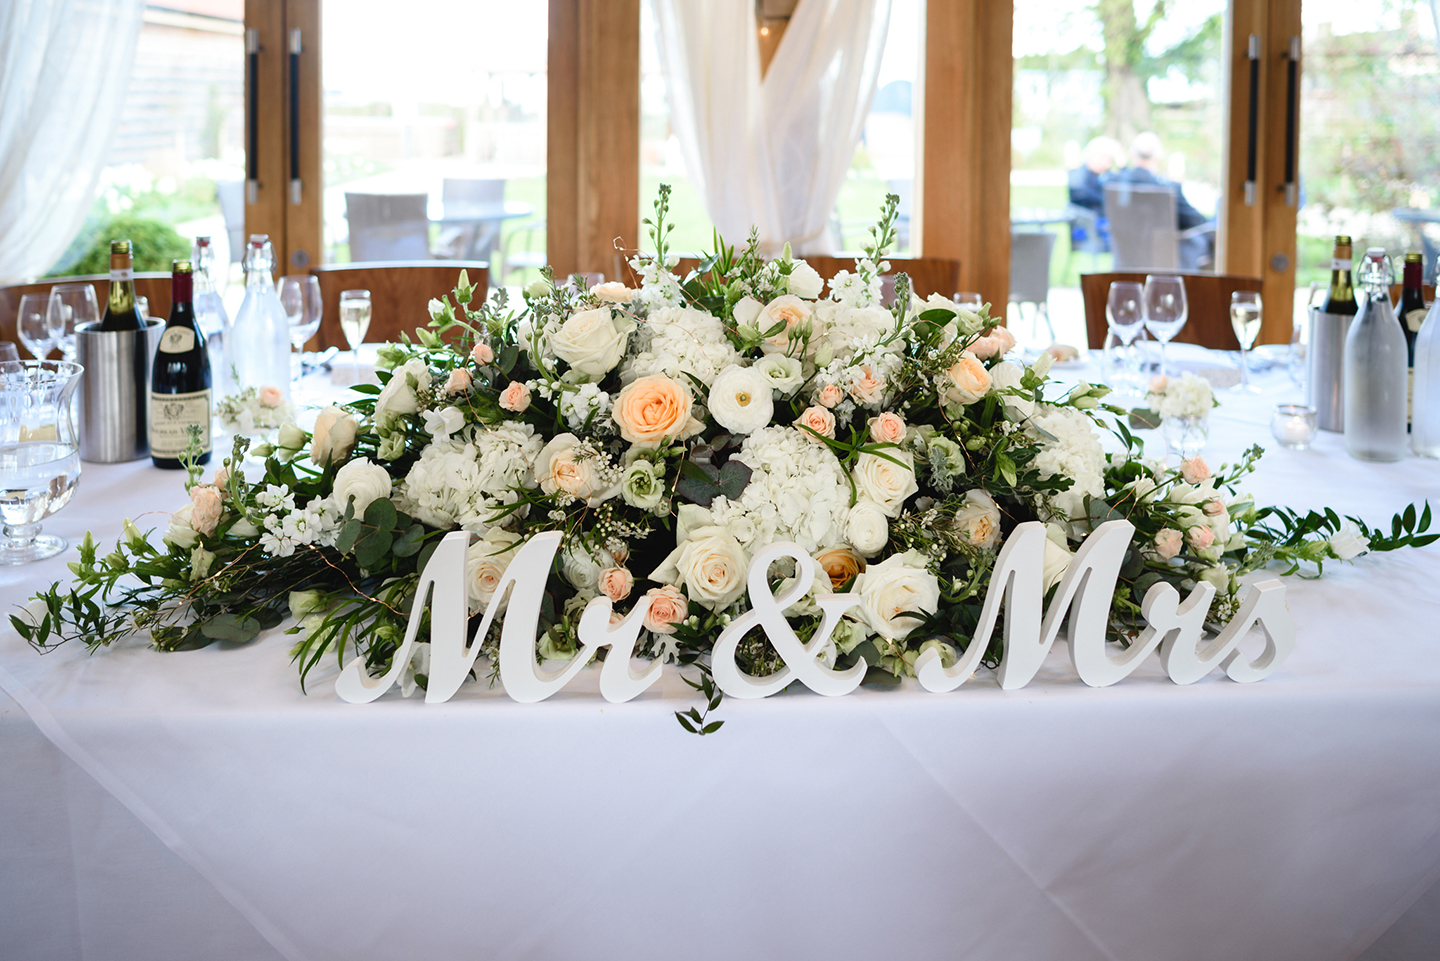 Beautiful white flowers were on display throughout the venue including the top table – wedding ideas